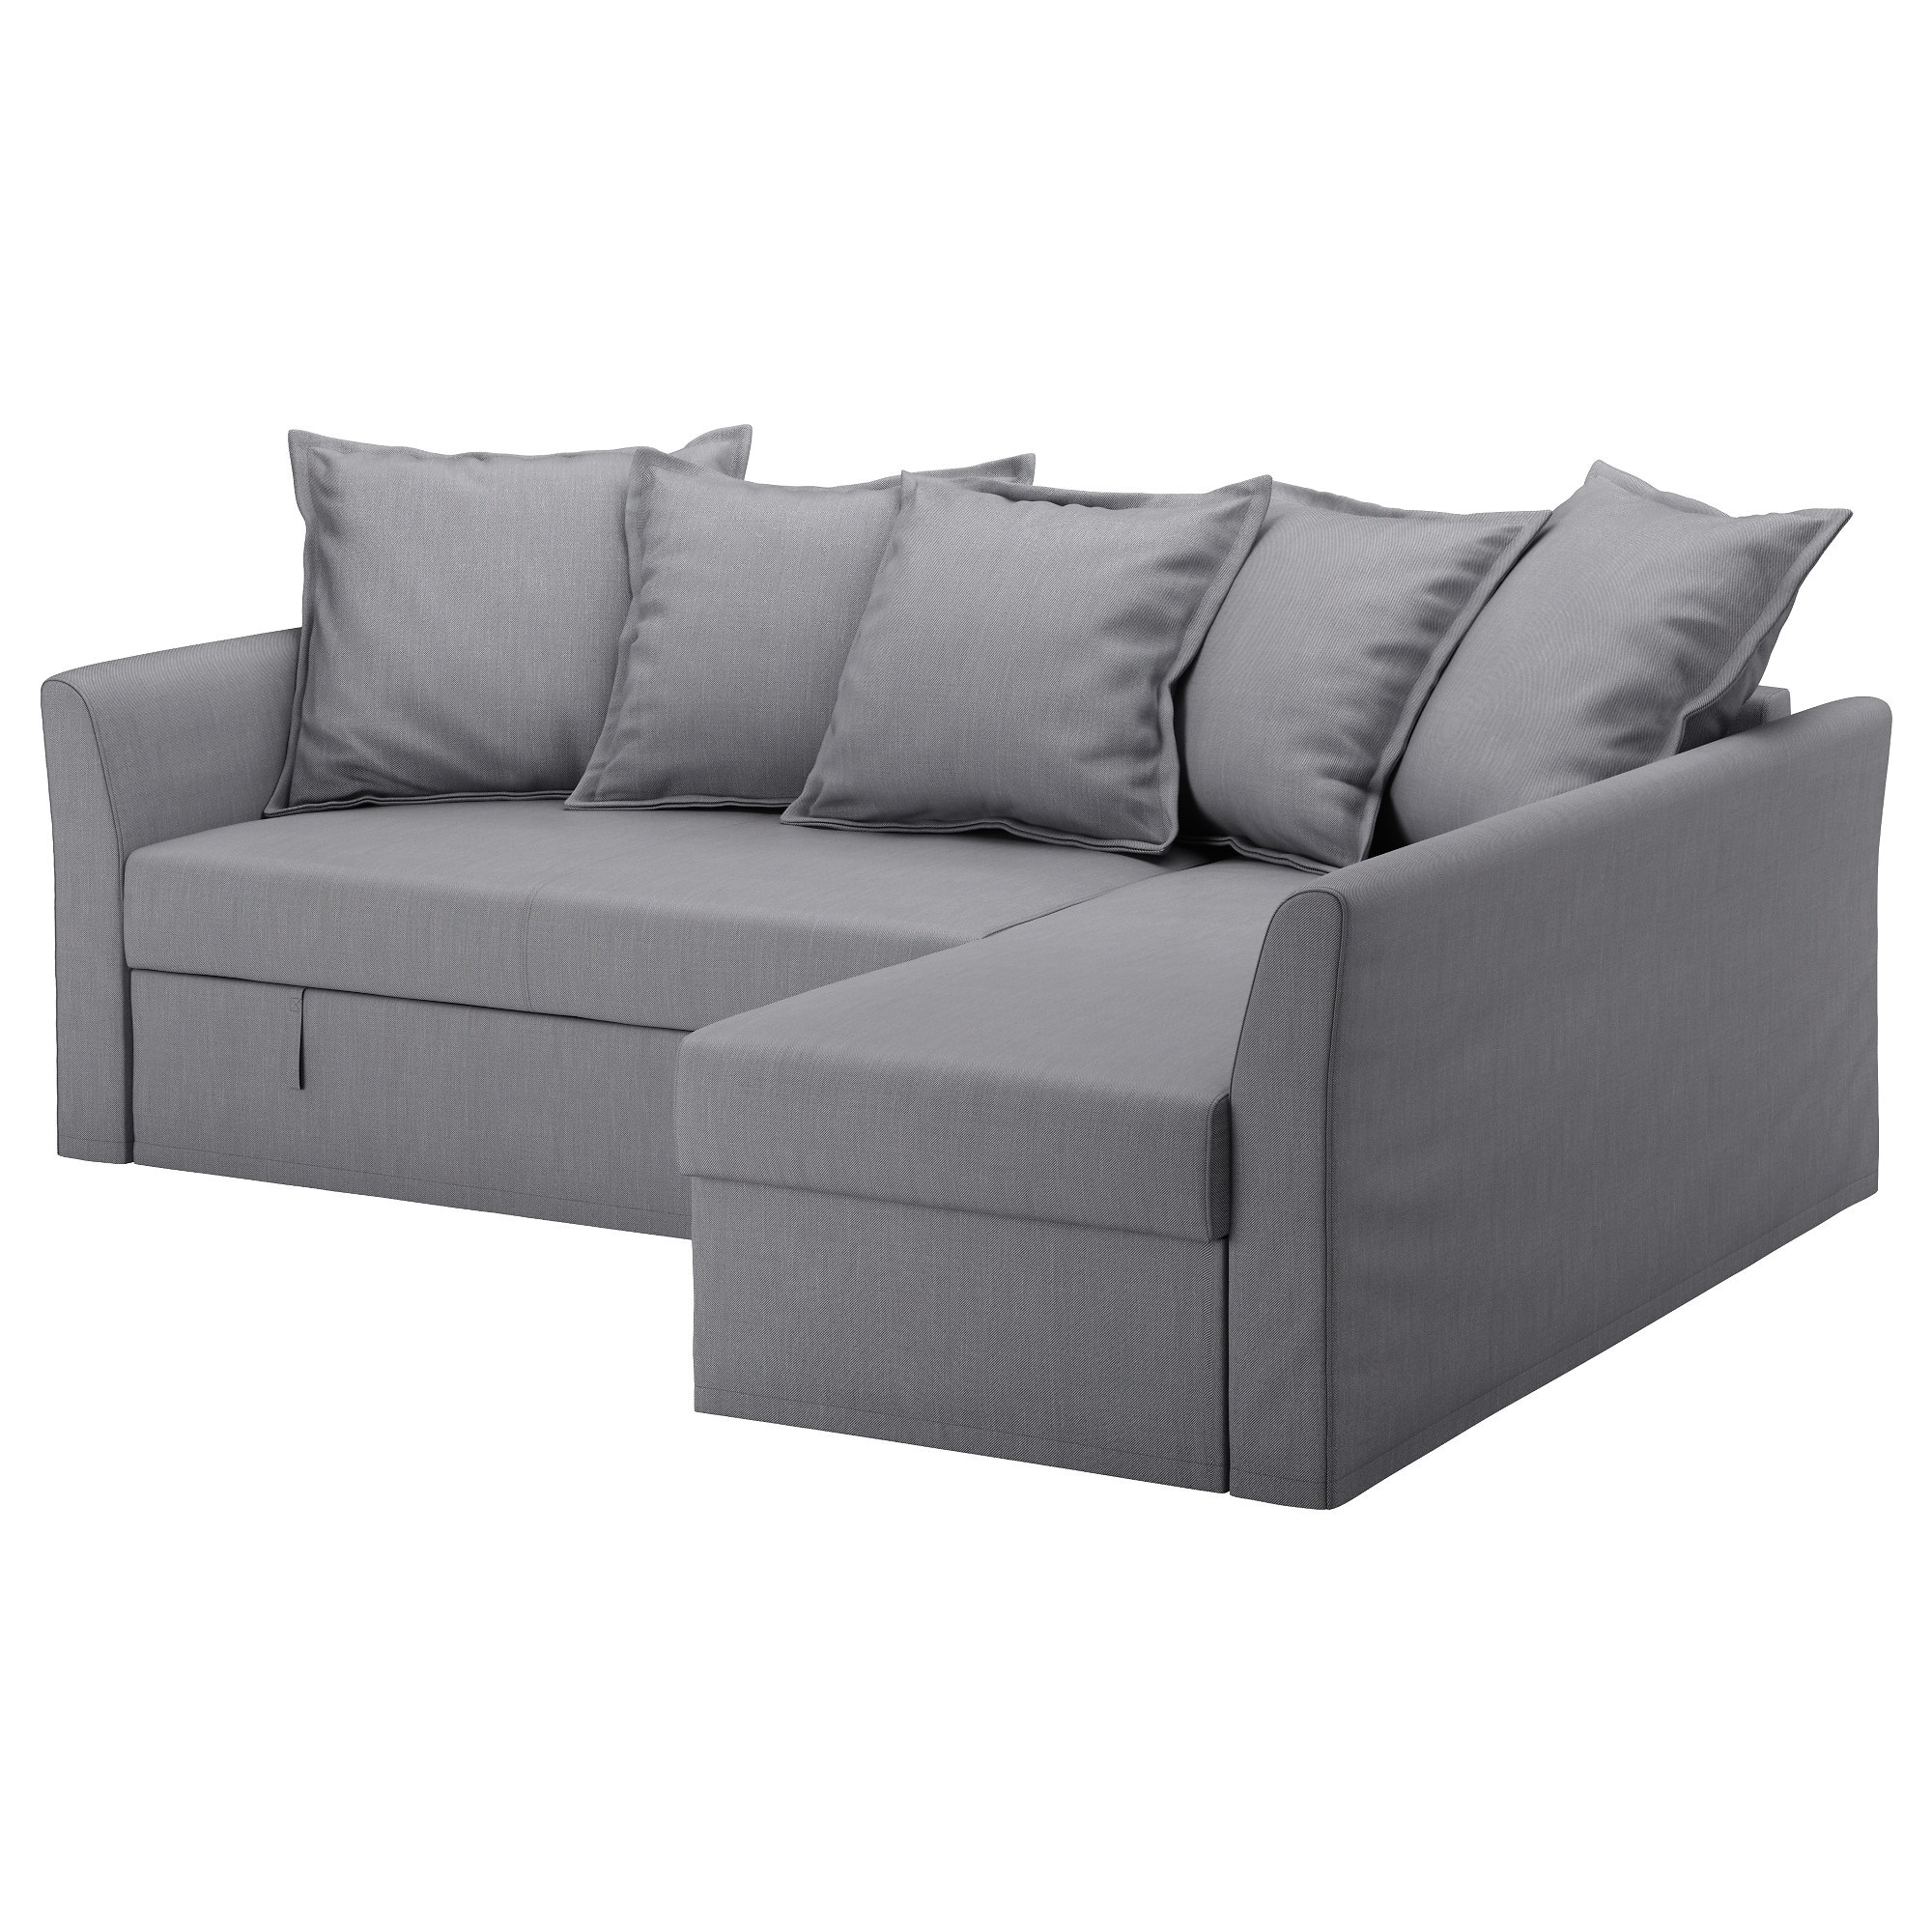 Schlafsofas Ikea Test Solsta Sofa Bed Ikea Review Adinaporter